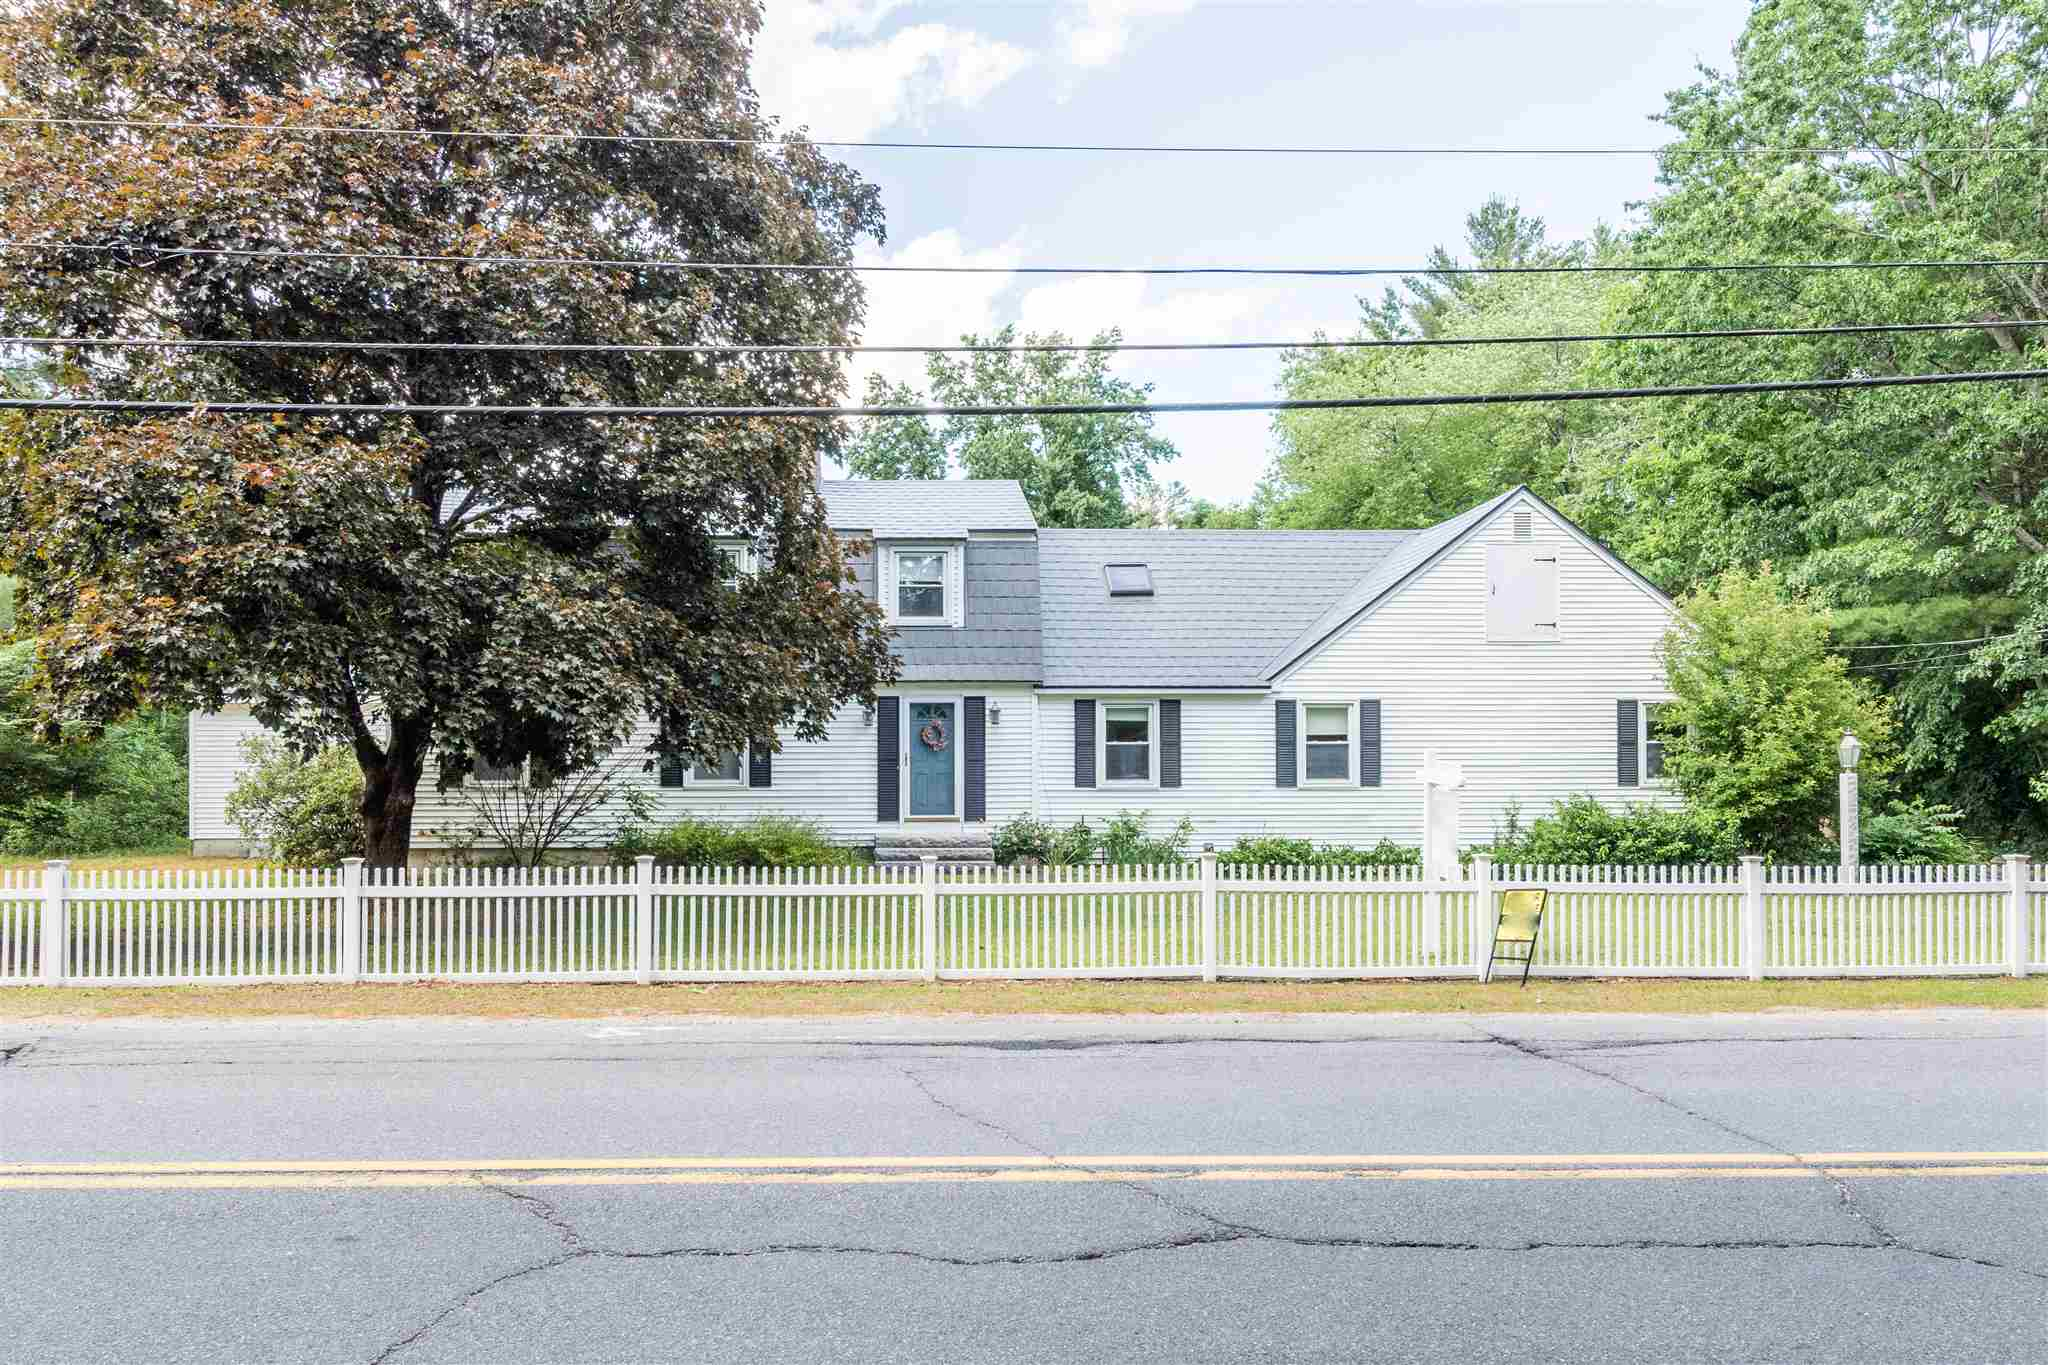 MLS 4791385: 33 Bedford Road, Merrimack NH